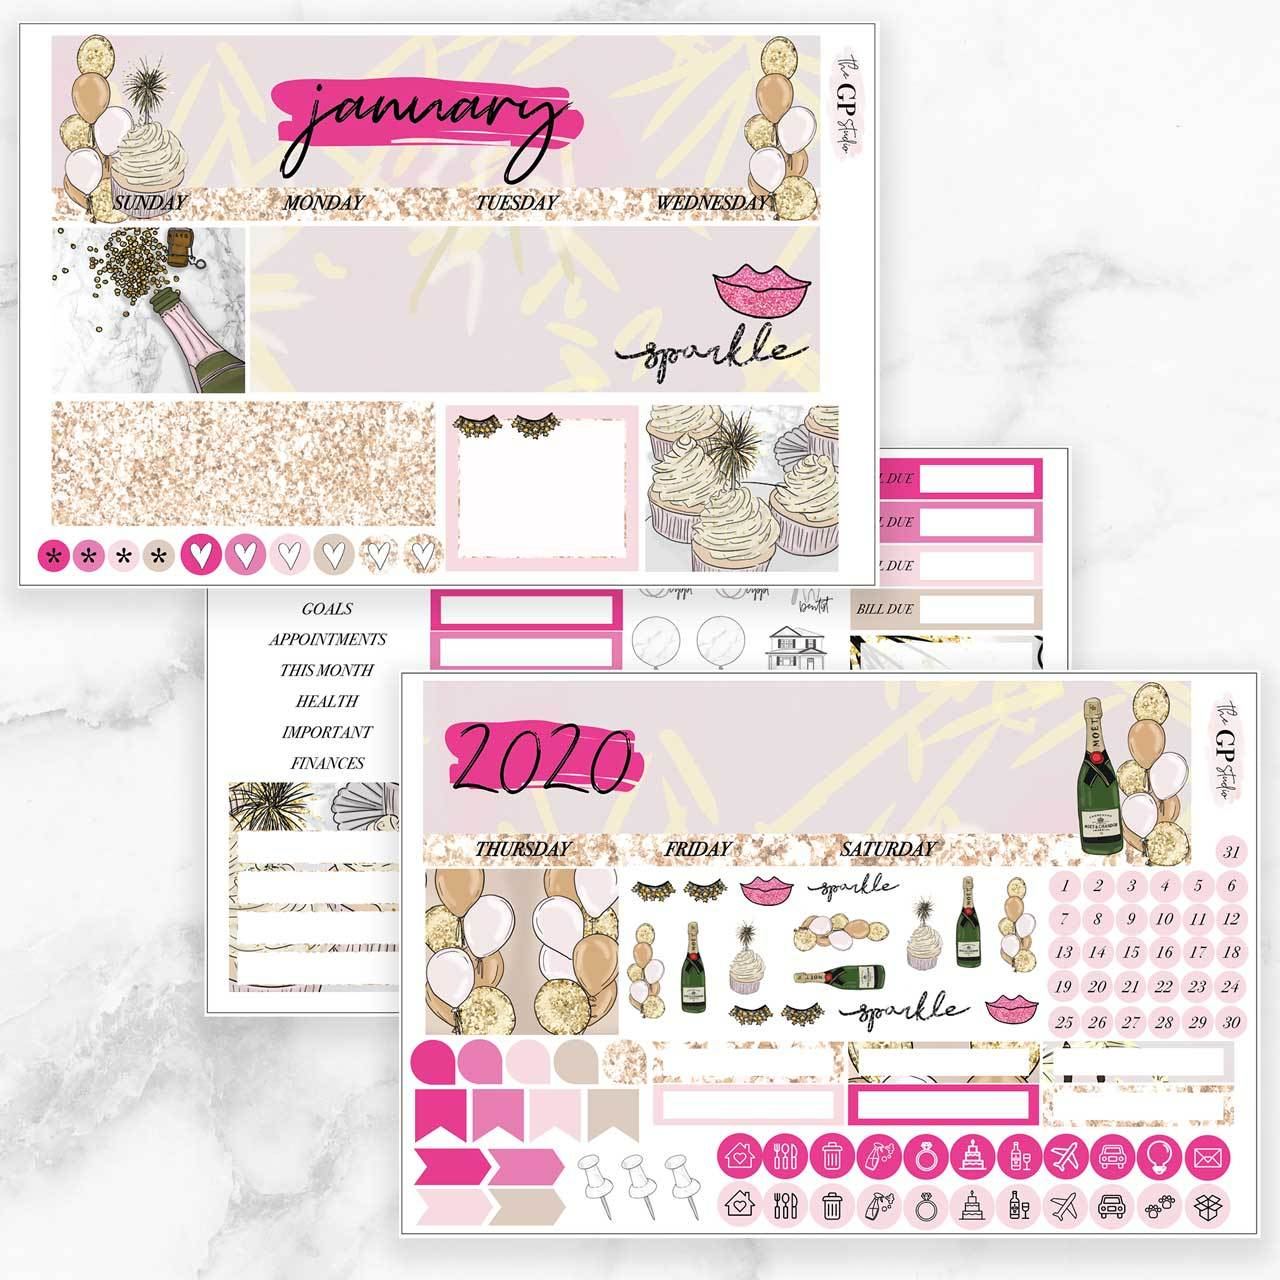 JANUARY 2020 Monthly View Sticker Kit Erin Condren Size-The GP Studio